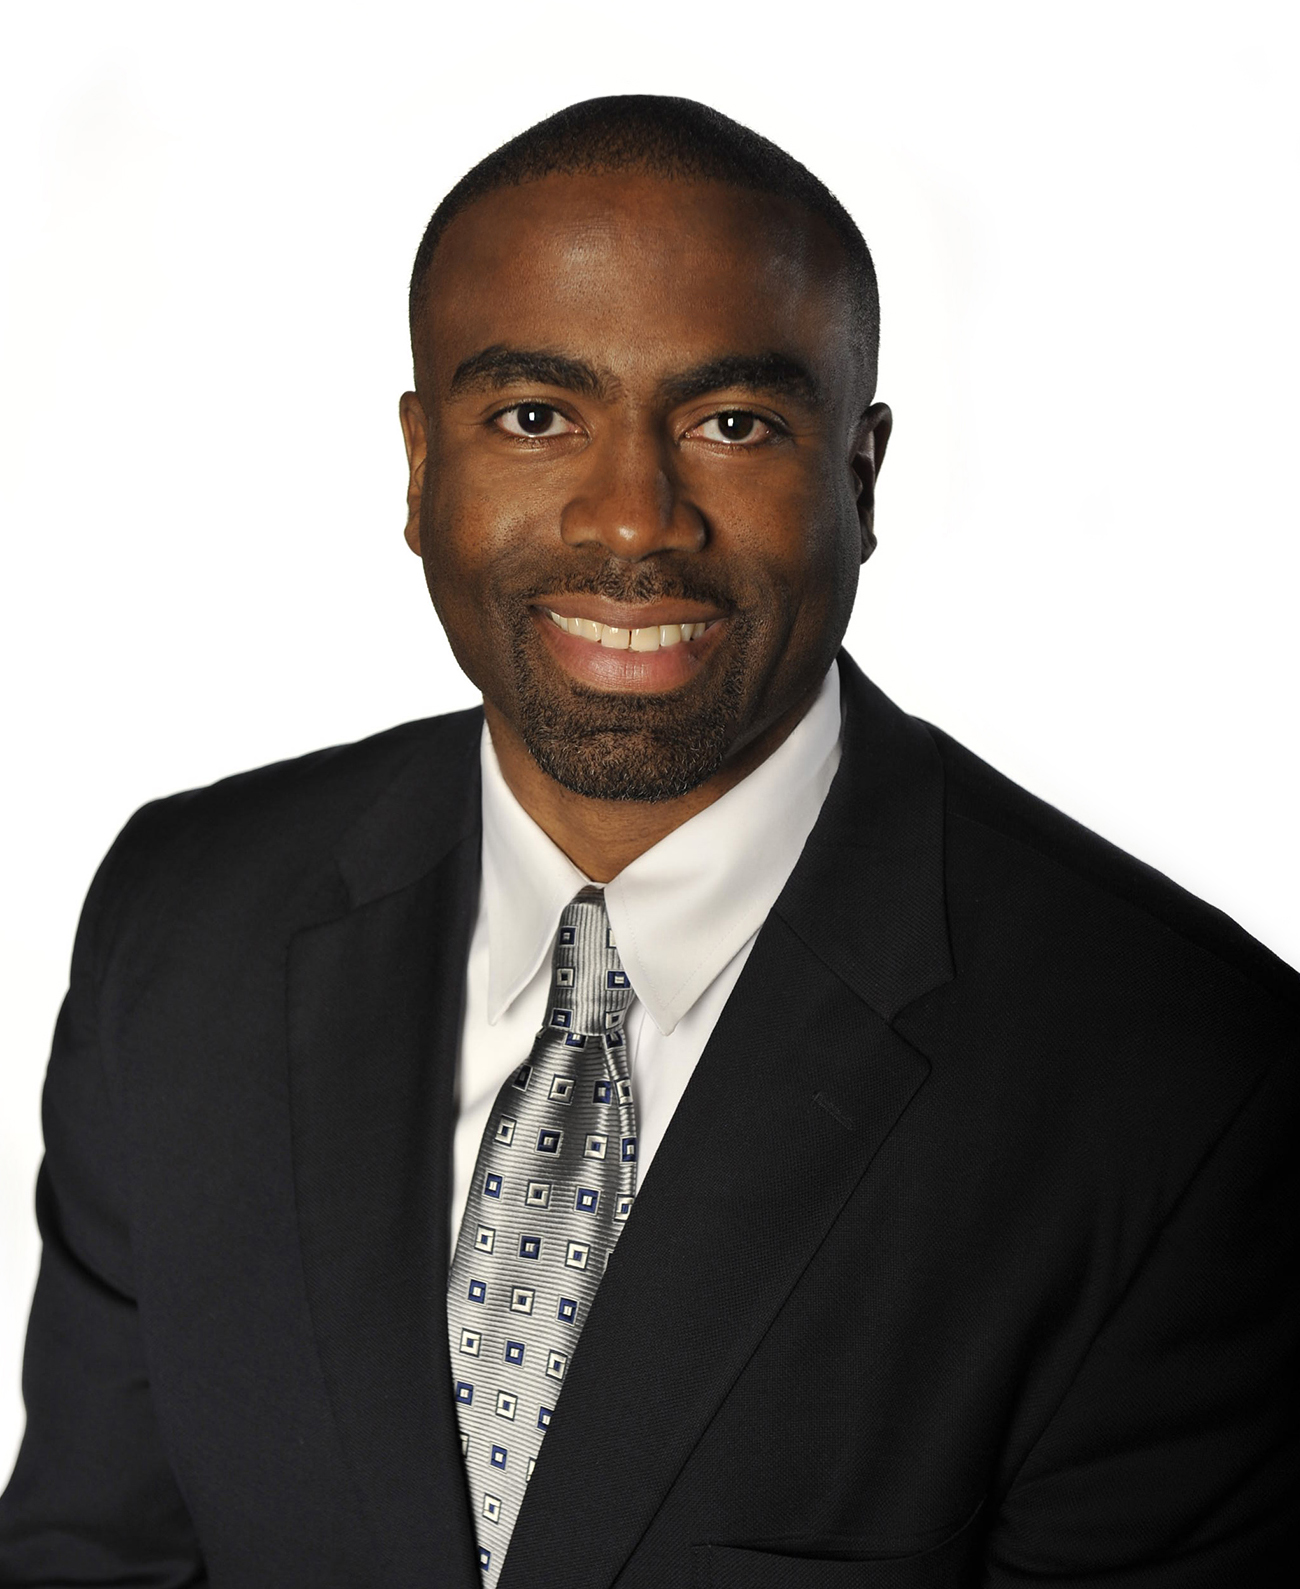 Daryl V. Atkinson, Senior Staff Attorney, Southern Coalition for Social Justice